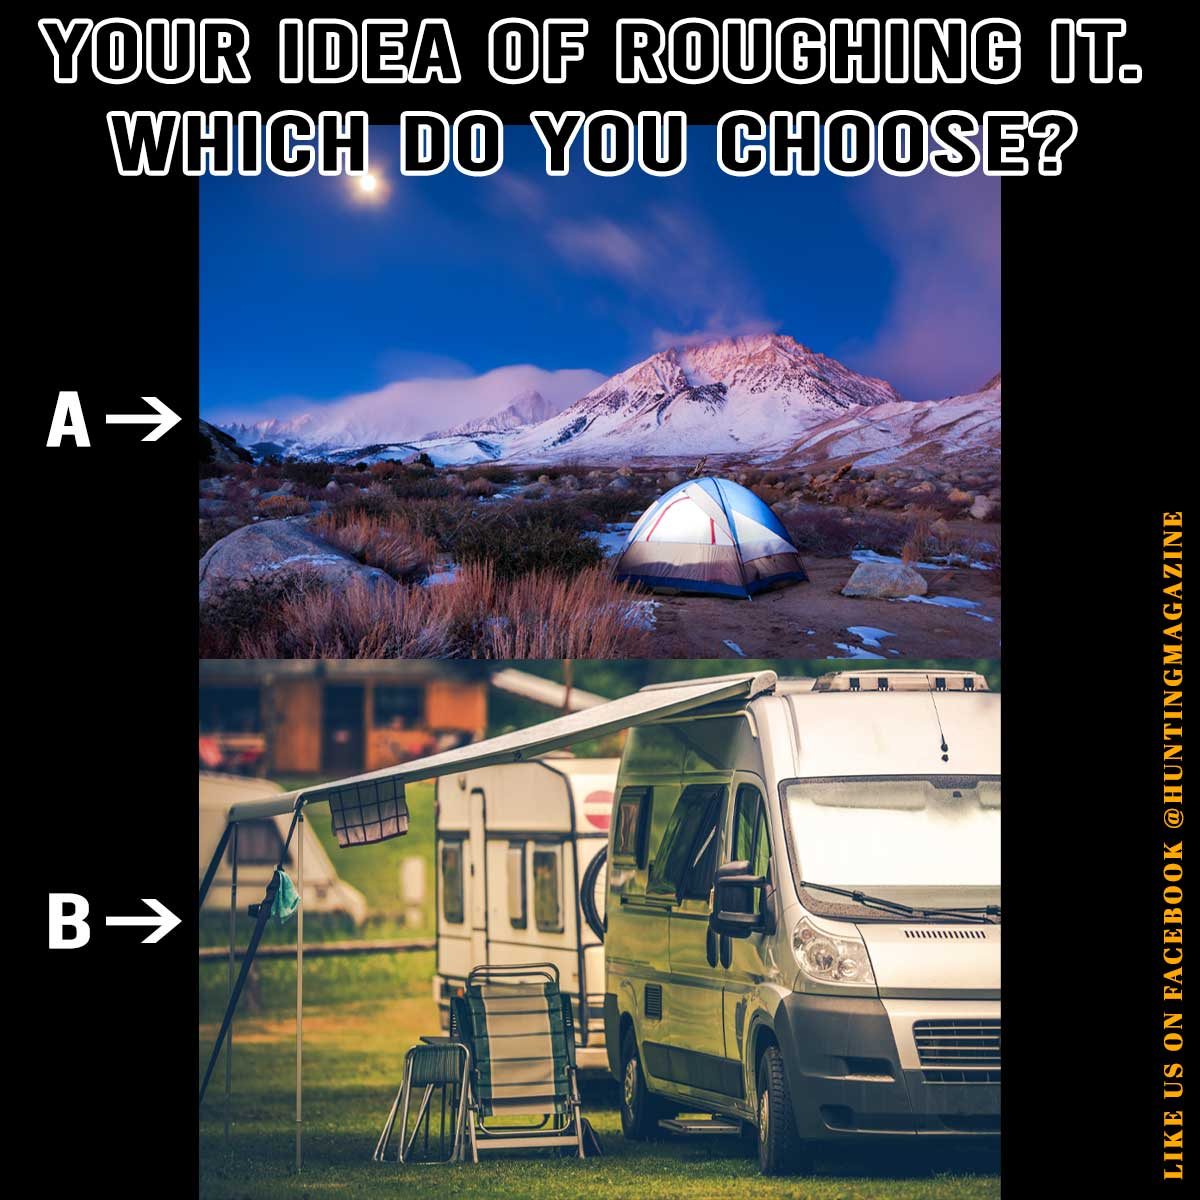 Meme: Roughing It. Choose Your Version of Roughing it? - Hunting Magazine